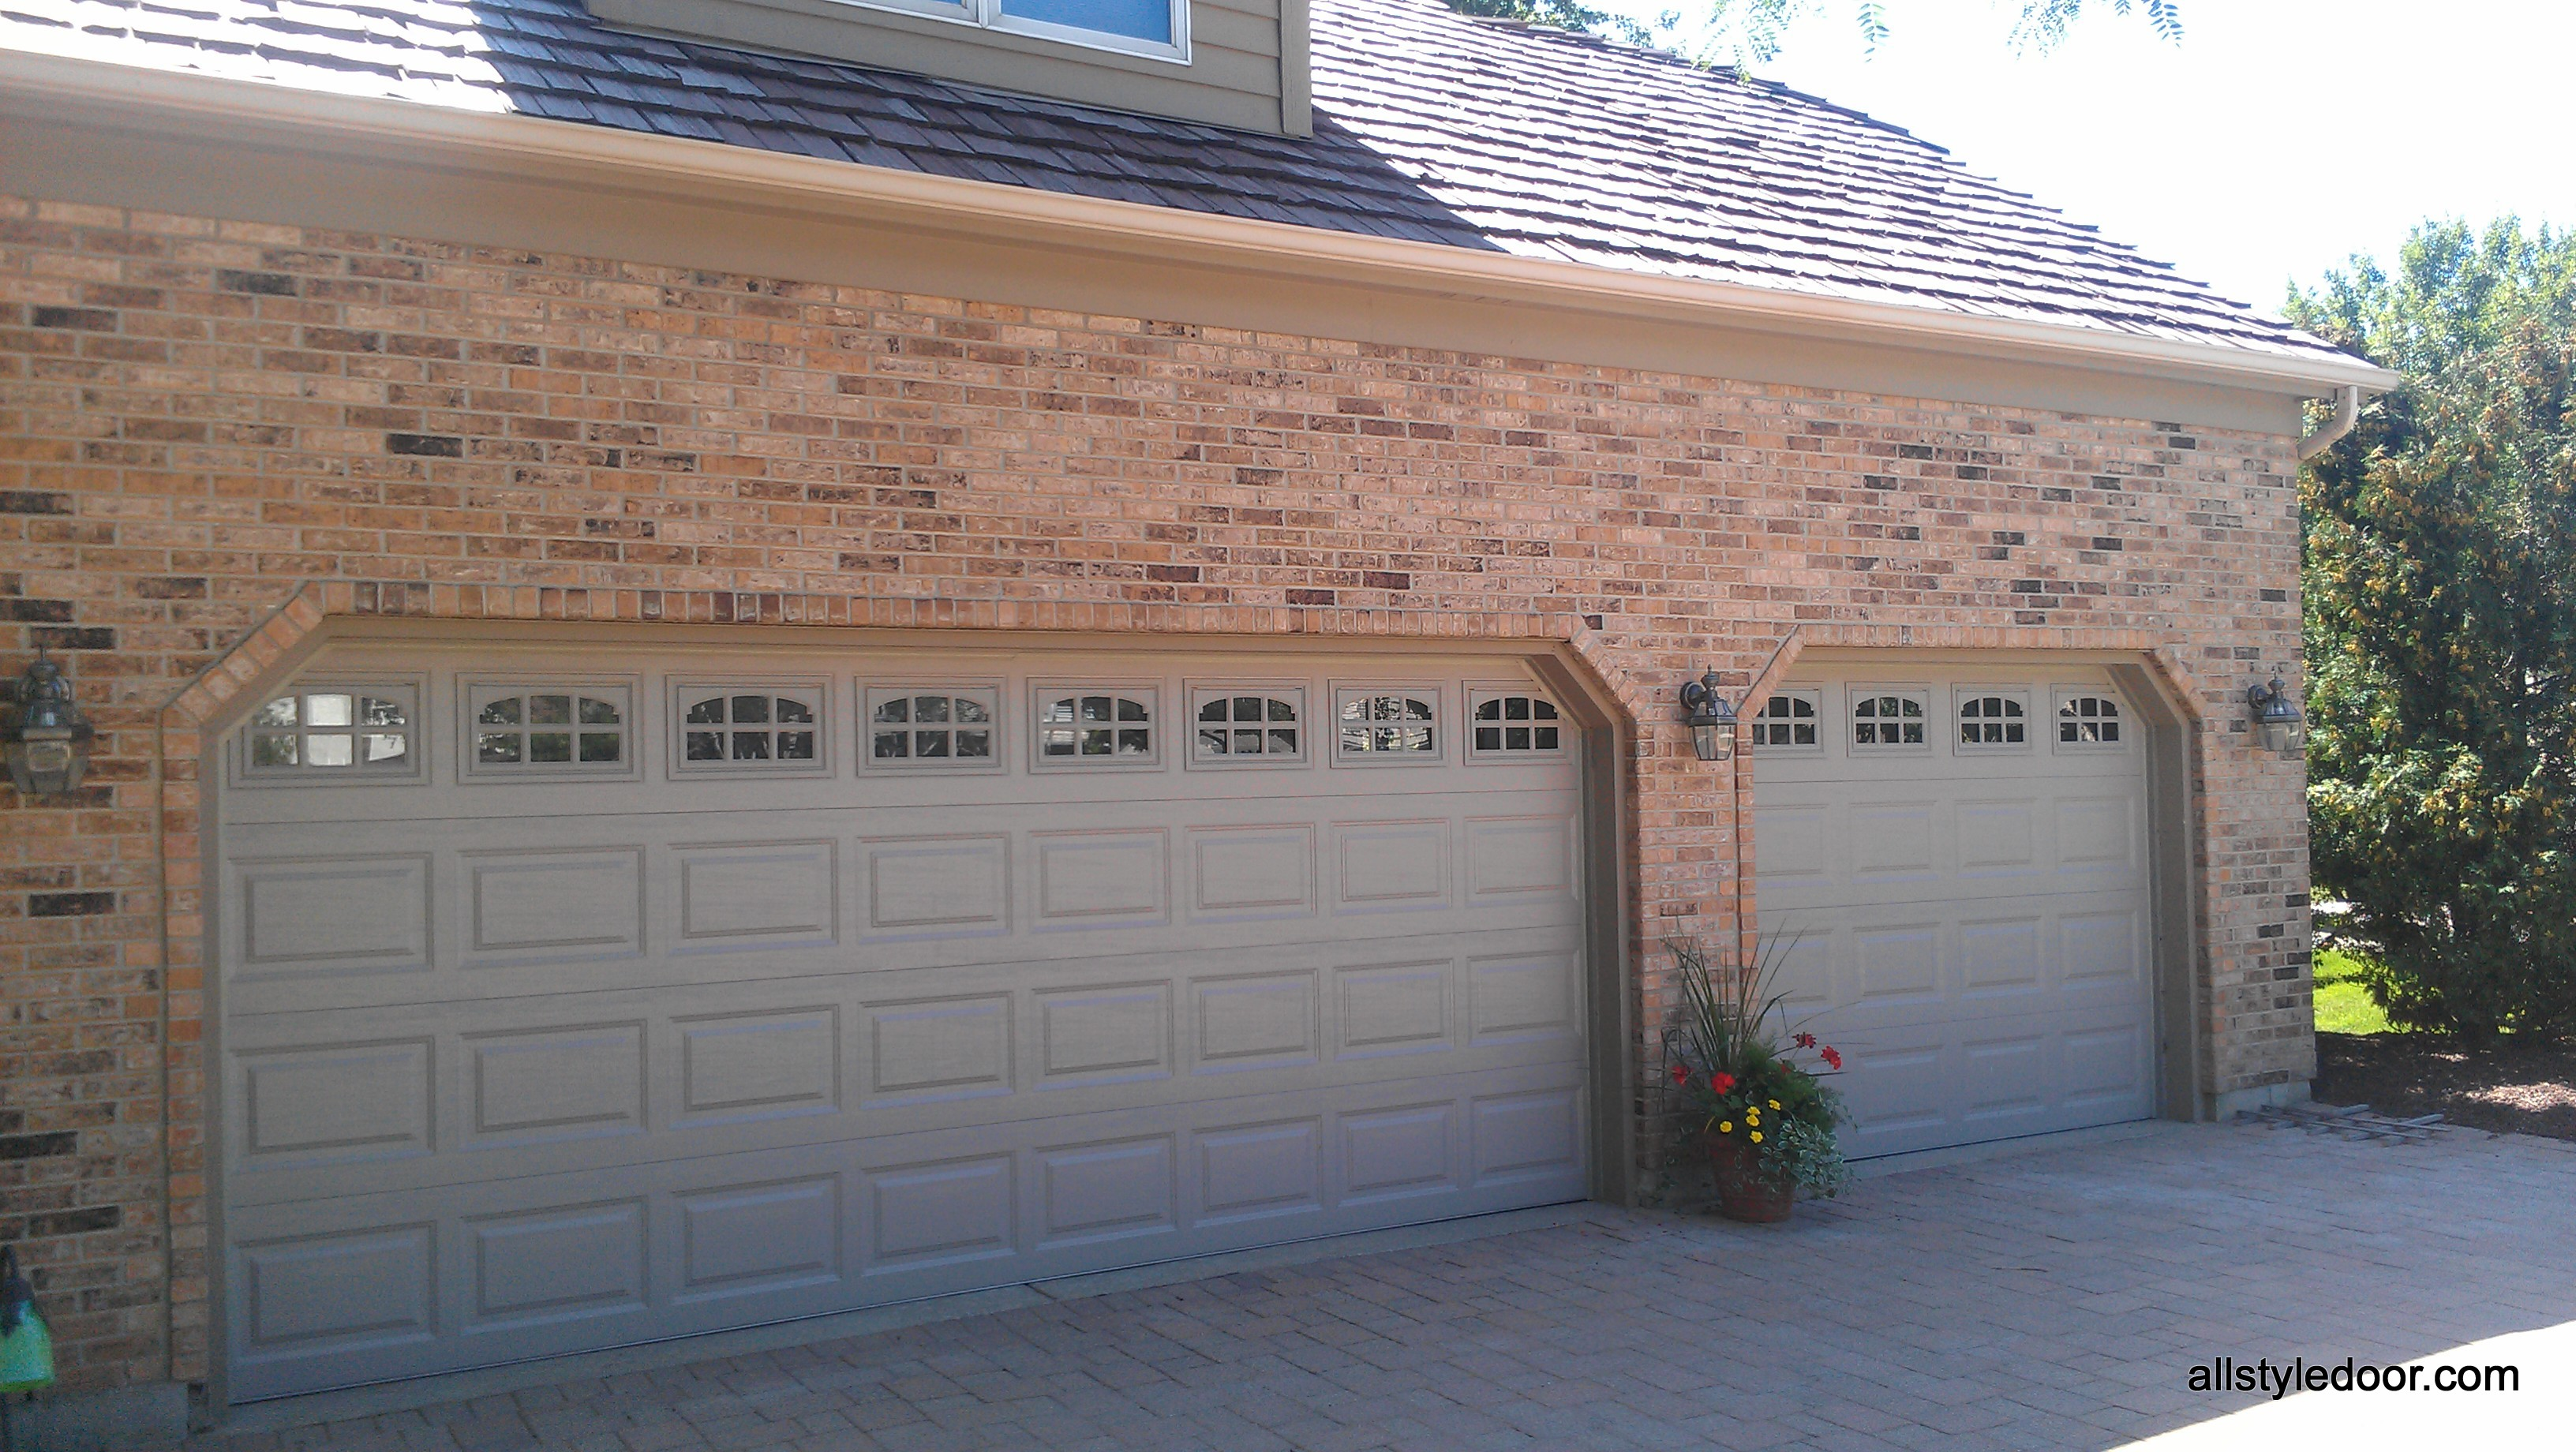 Garage Door Repair Naperville In Garage Door Repair